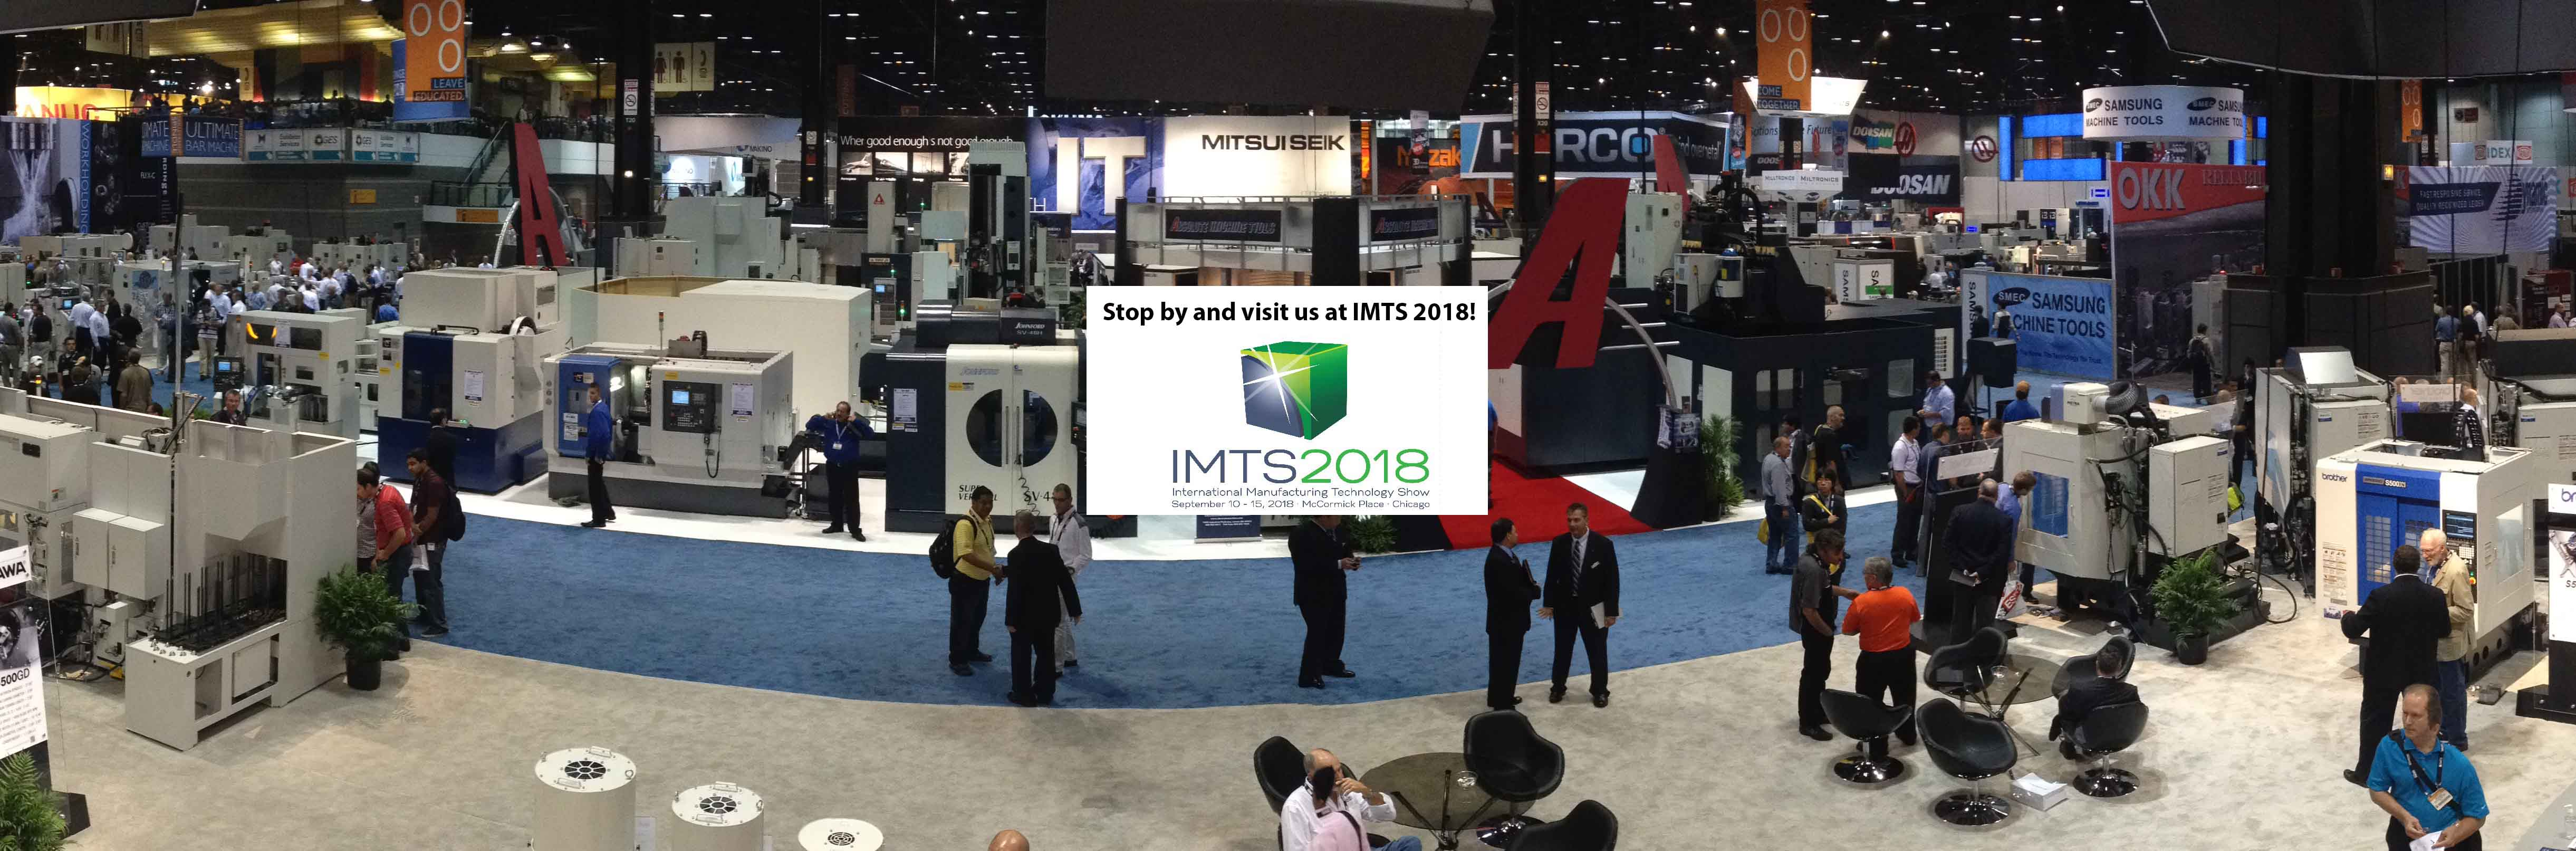 Visit us at IMTS 2018